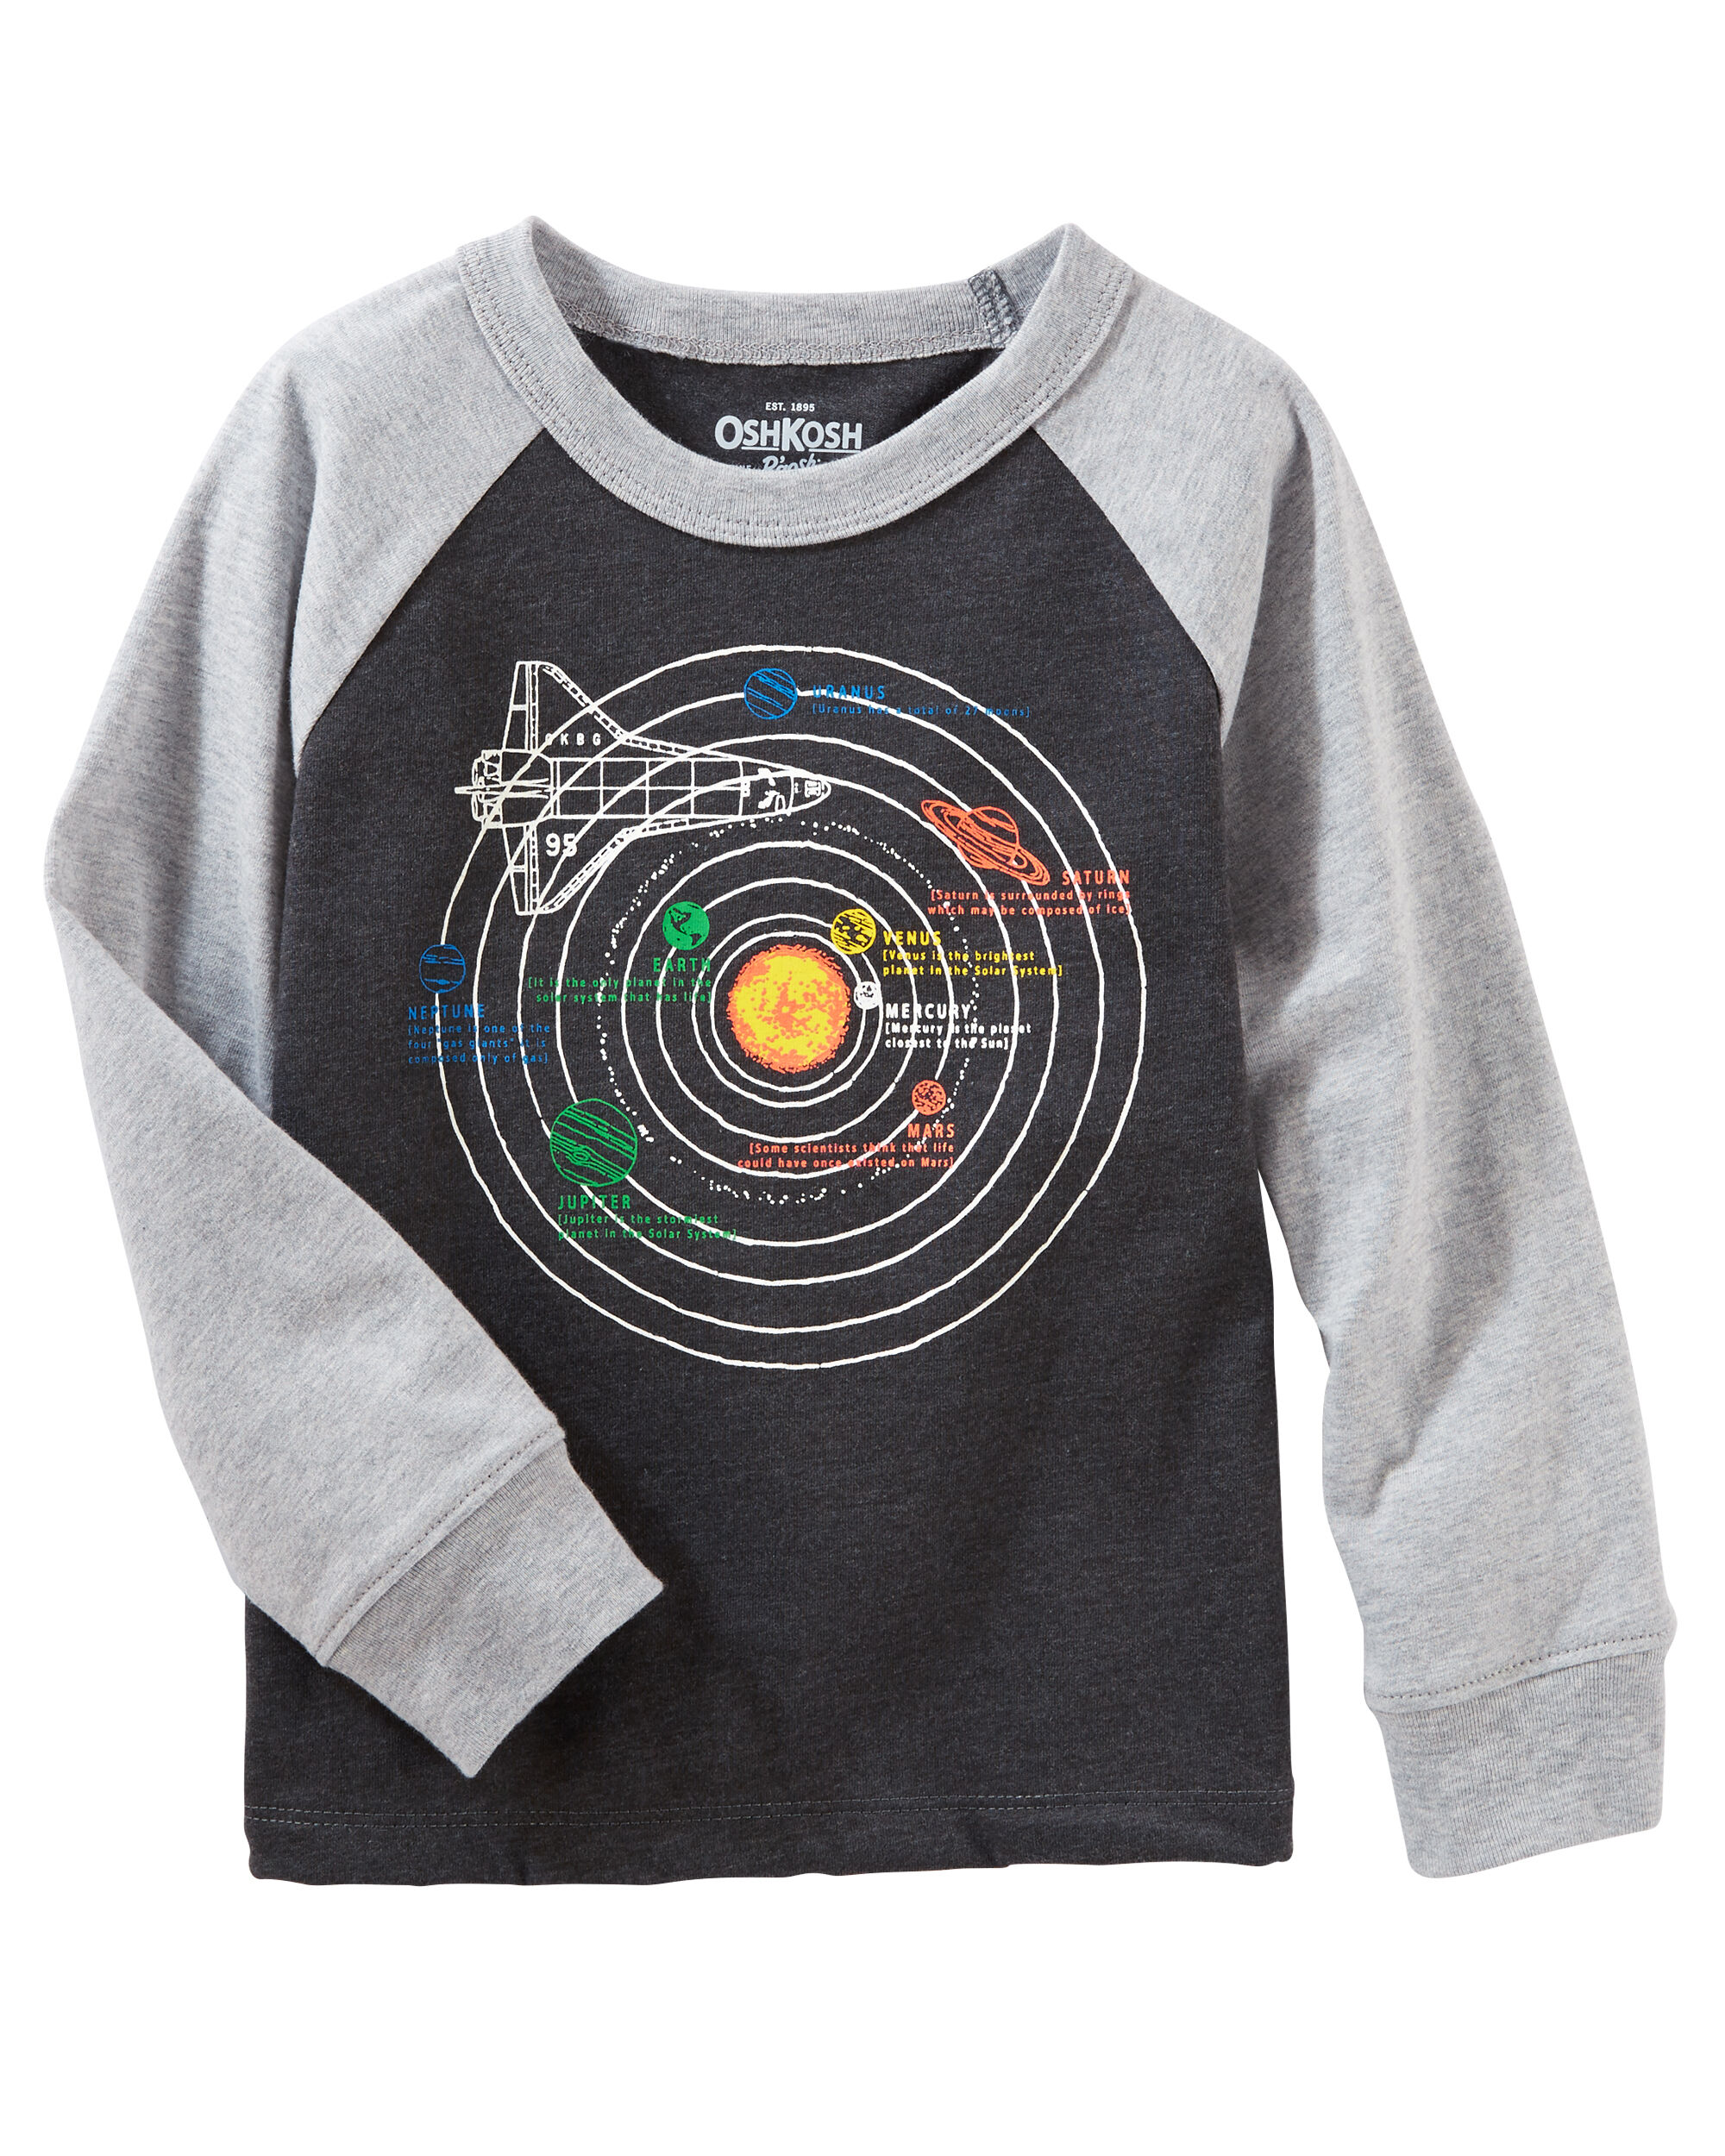 Toddler Boy Tops & T-Shirts | Oshkosh | Free Shipping